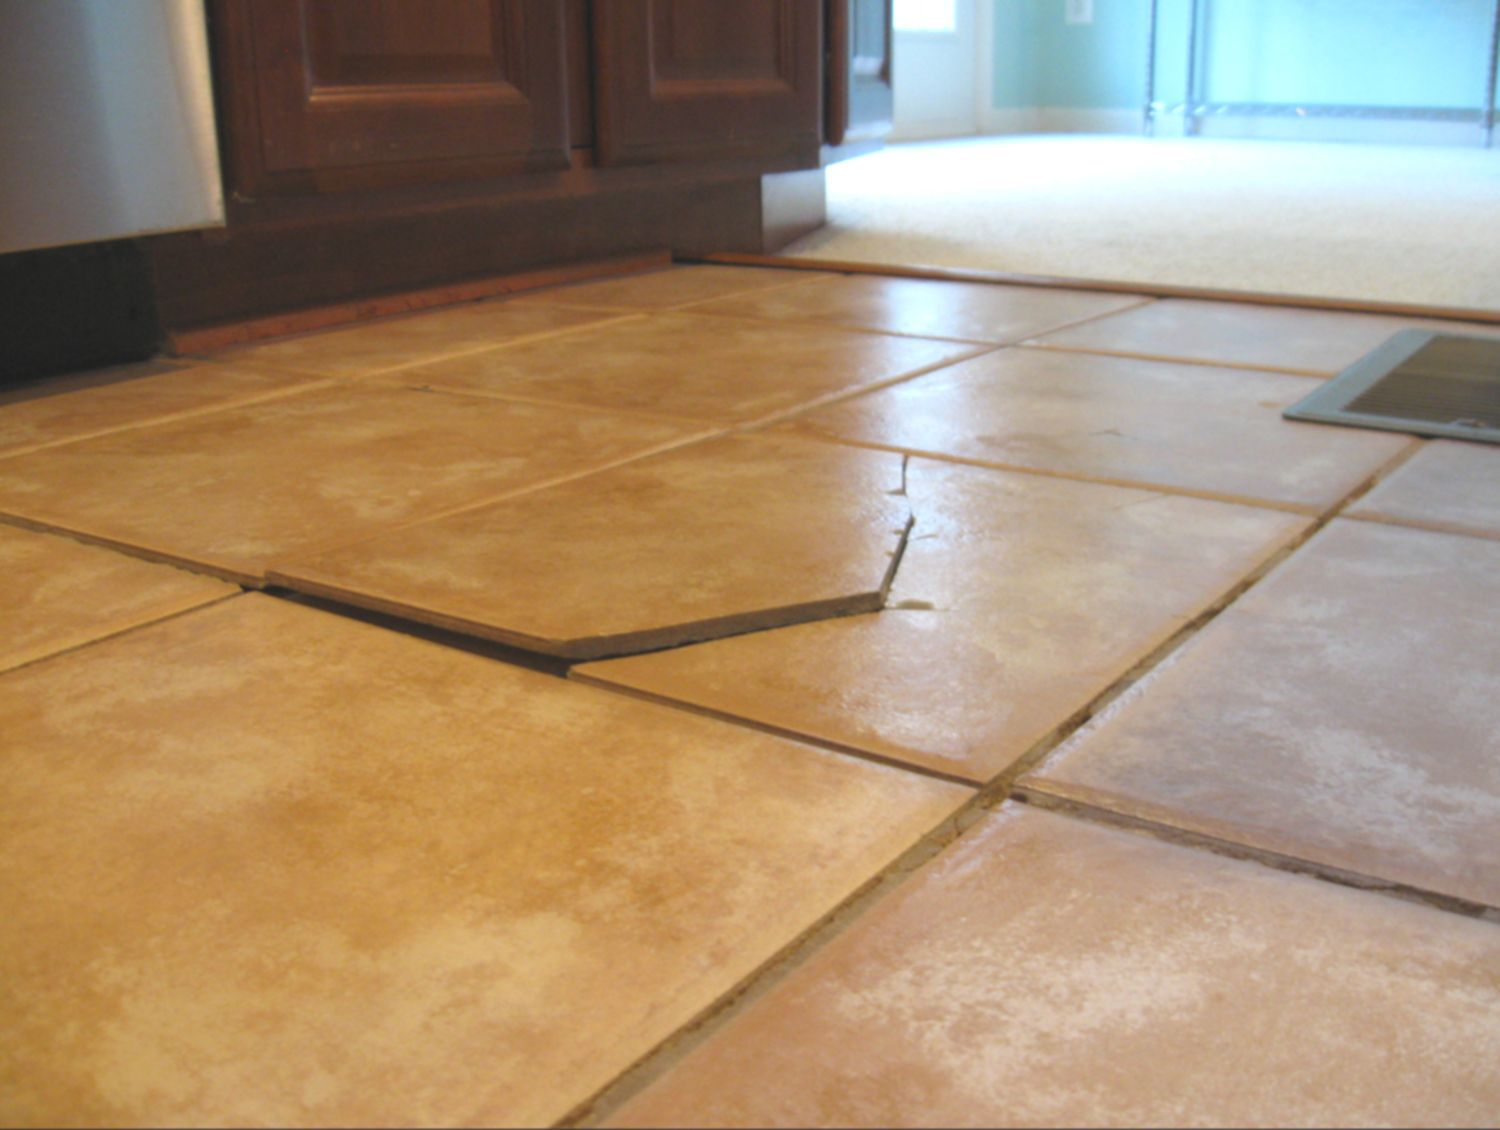 7 Reasons For Cracked Tile On Floors And Walls